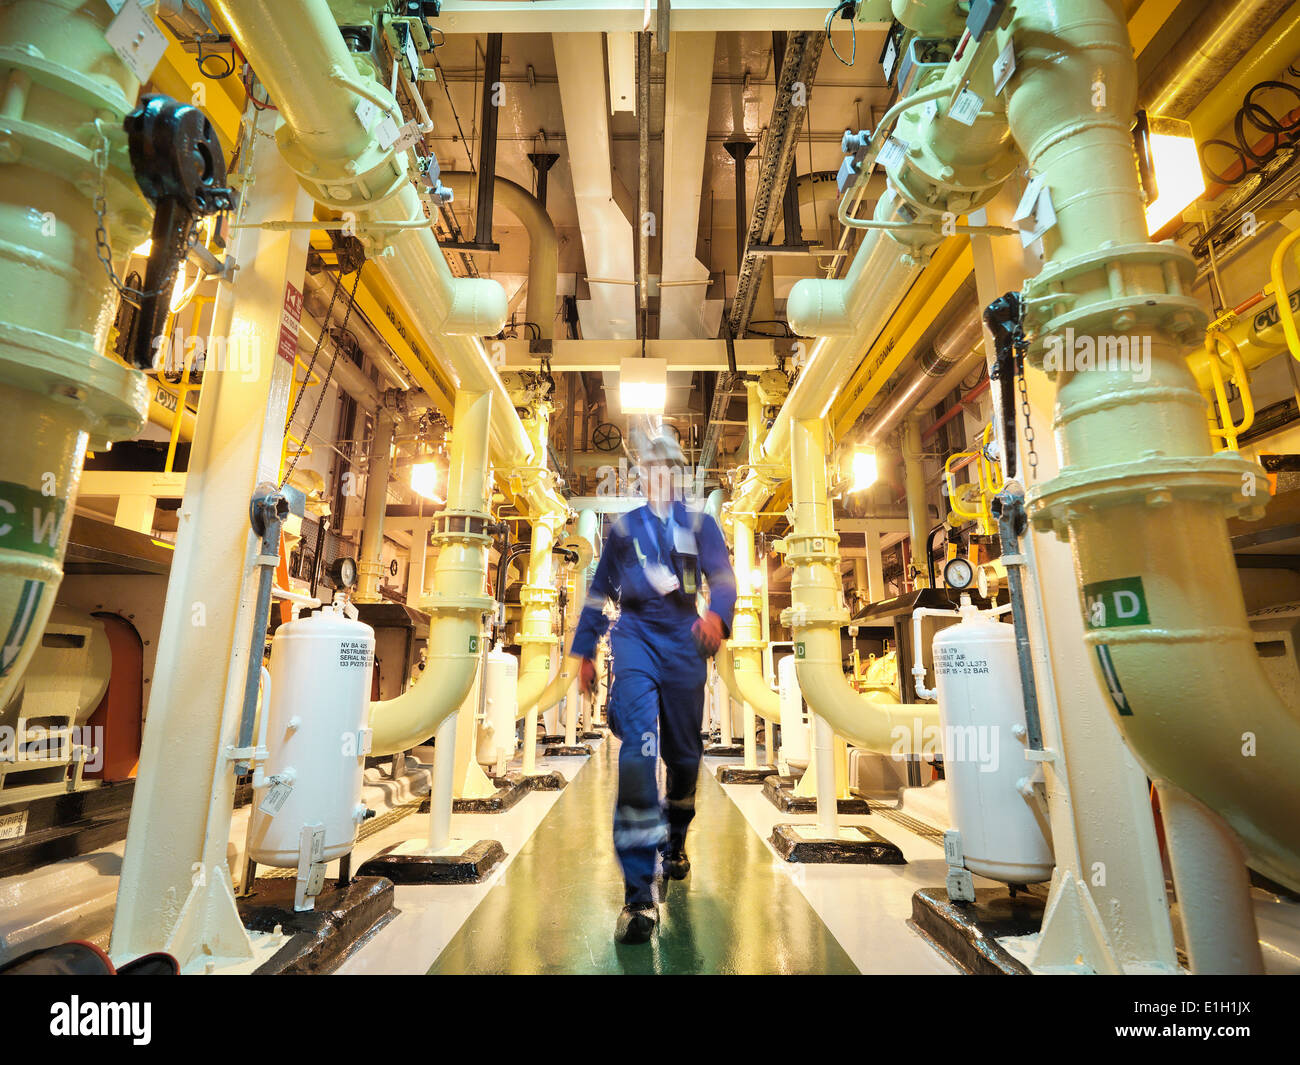 Engineer walking amongst pipes of nuclear power station - Stock Image